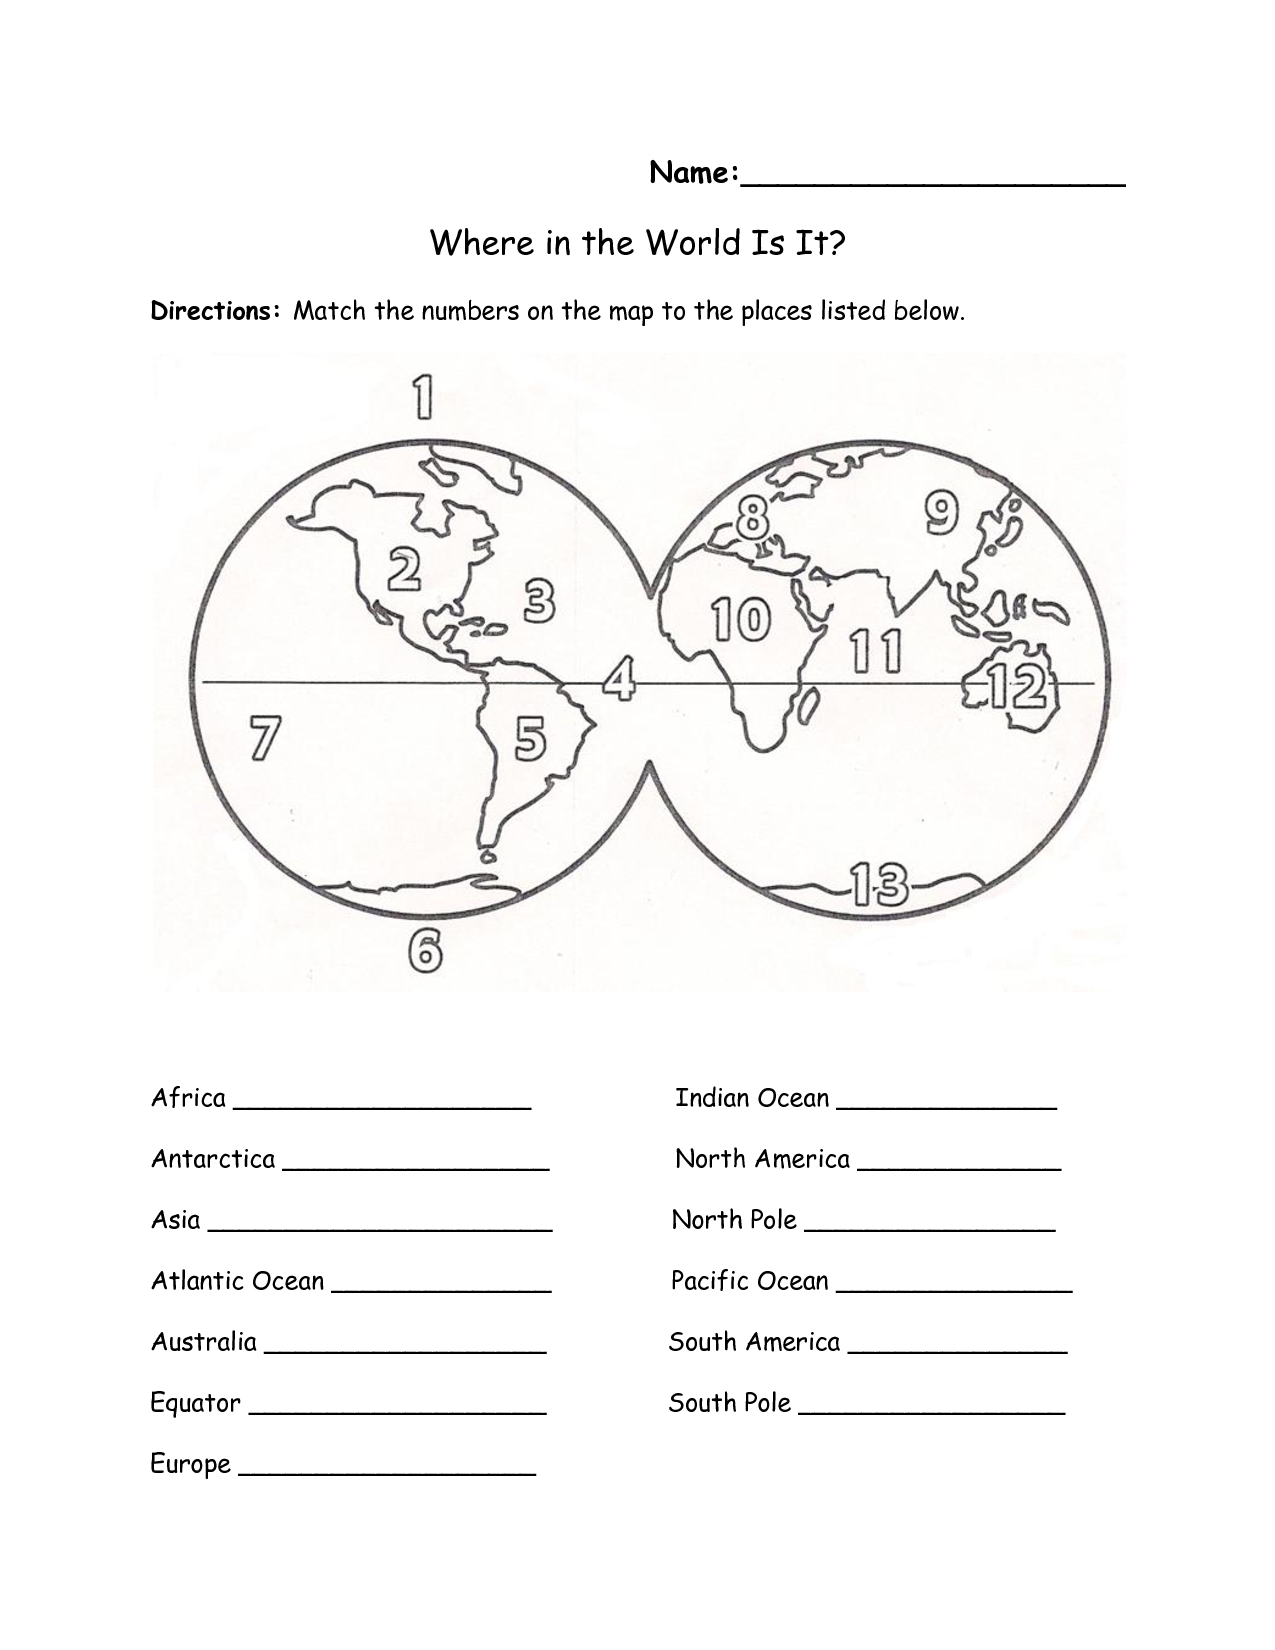 Worksheets Continents And Oceans Quiz Worksheet printables continents and oceans of the world worksheet education worksheet